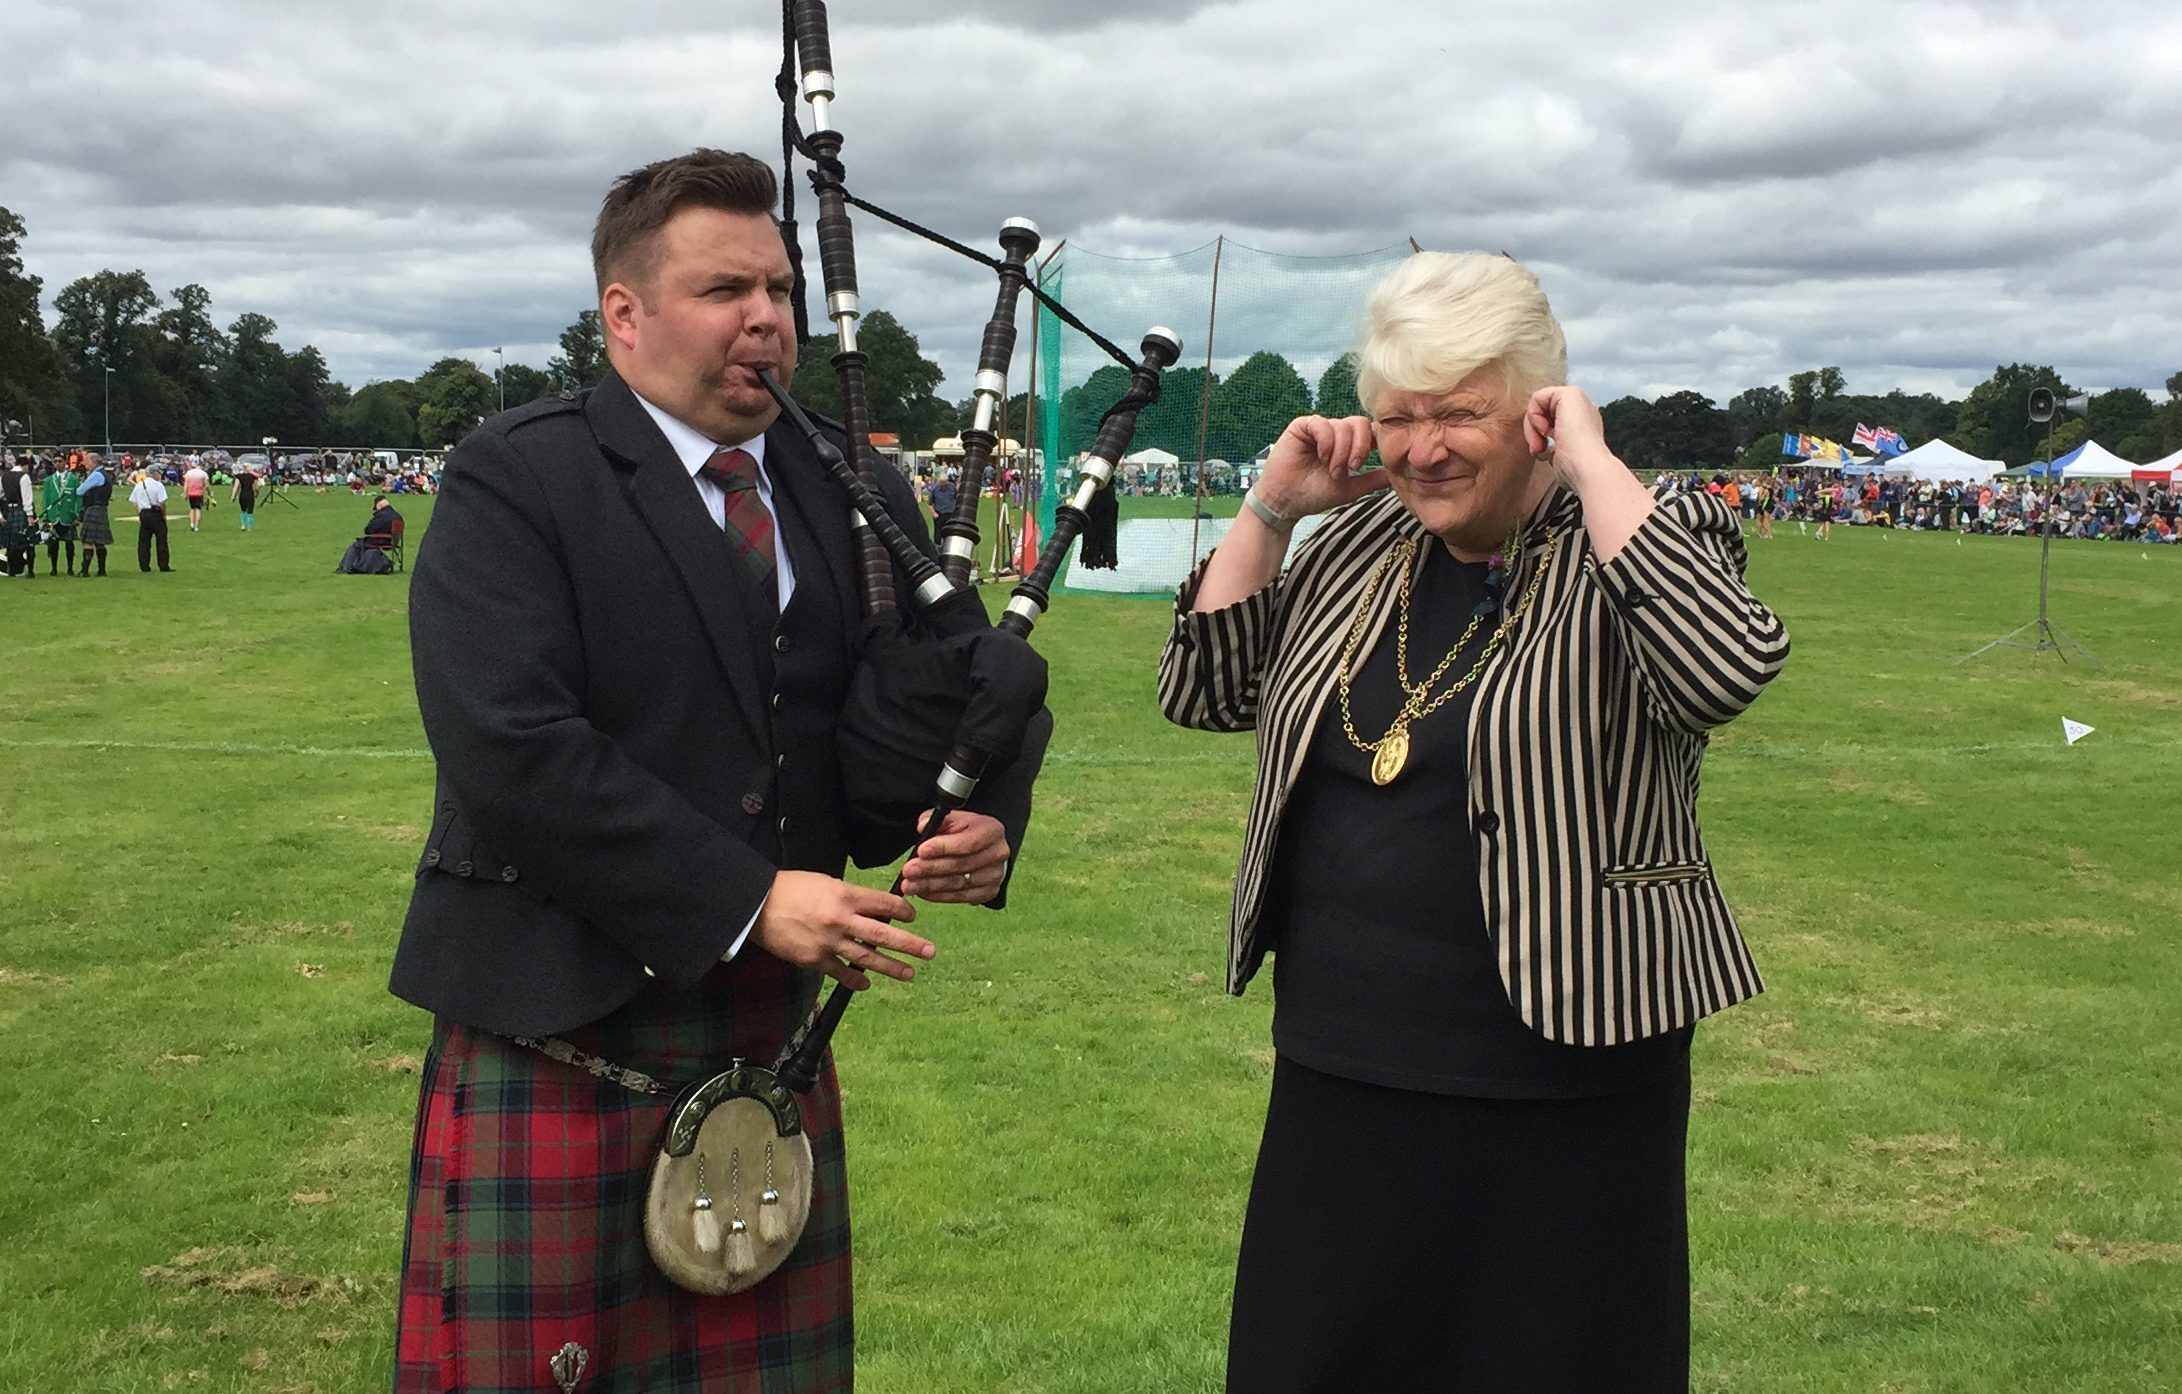 Stuart Cassells plays the pipes for Liz Grant.